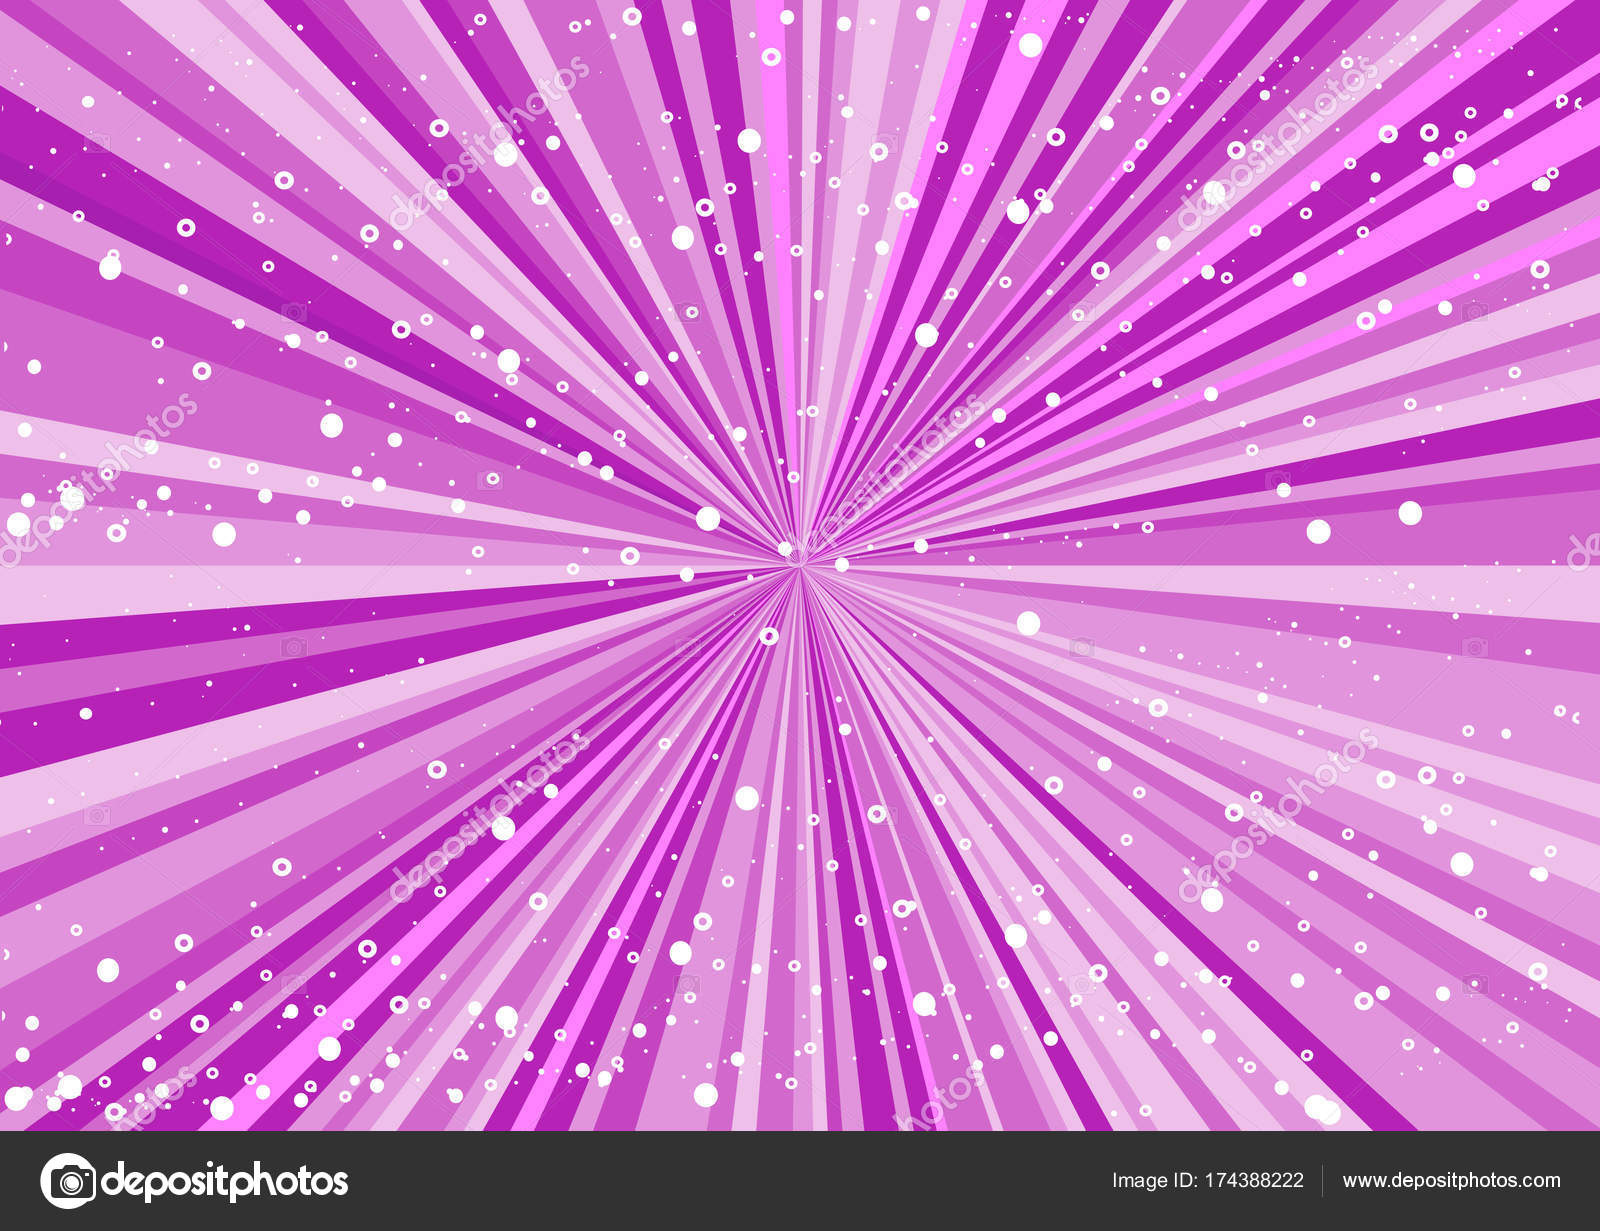 Cool Birthday Backgrounds Birthday Background With Colorful Beams Abstract Backdrop Stock Vector C Olgayakovenko 174388222